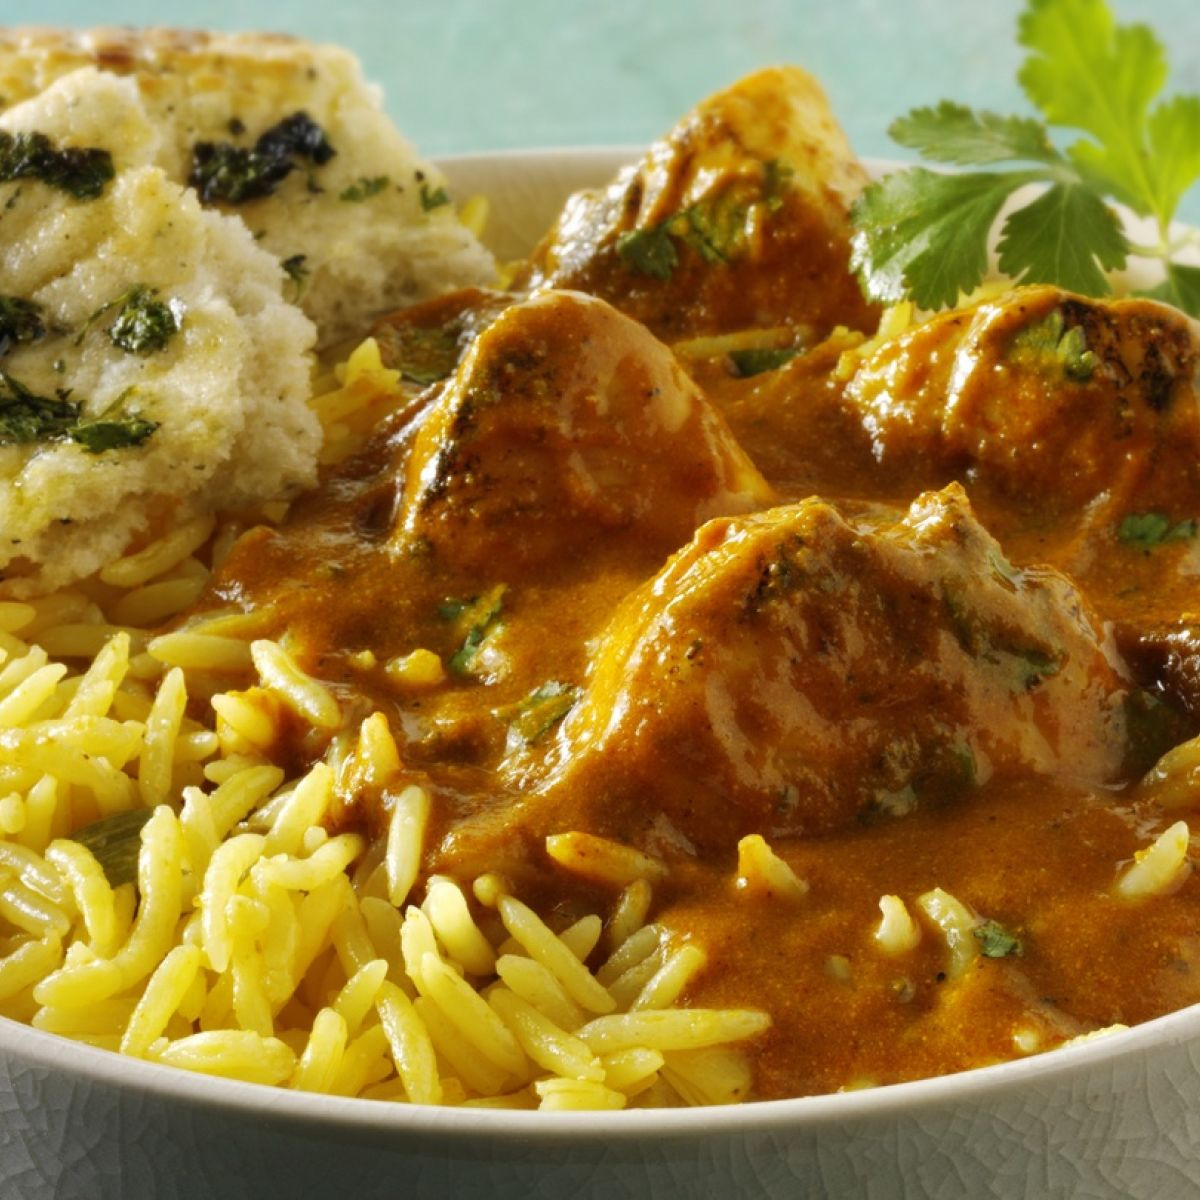 Indian Takeaway Has More Calories Than Entire Daily Allowance